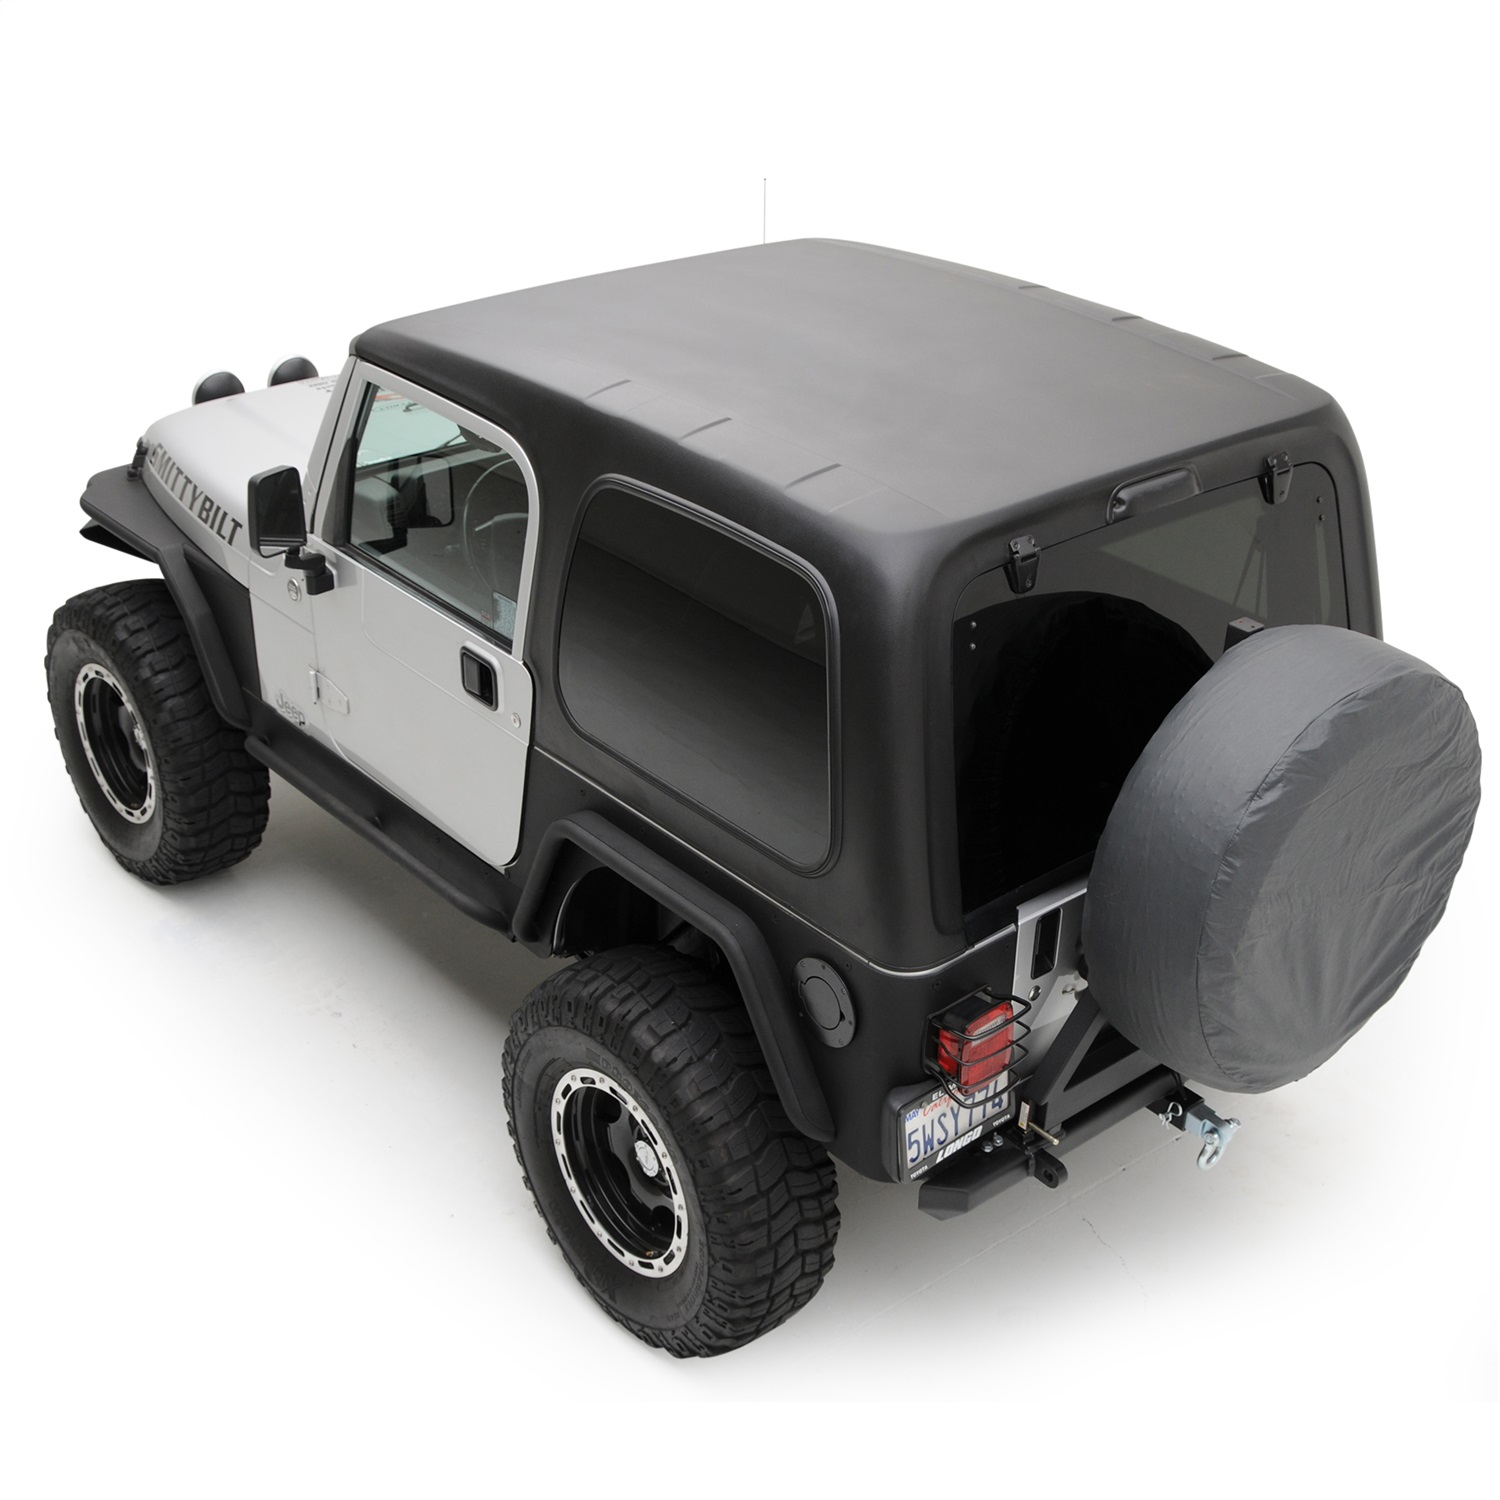 Smittybilt 519701 Replacement Hard Top Fits 97-06 TJ Wrangler